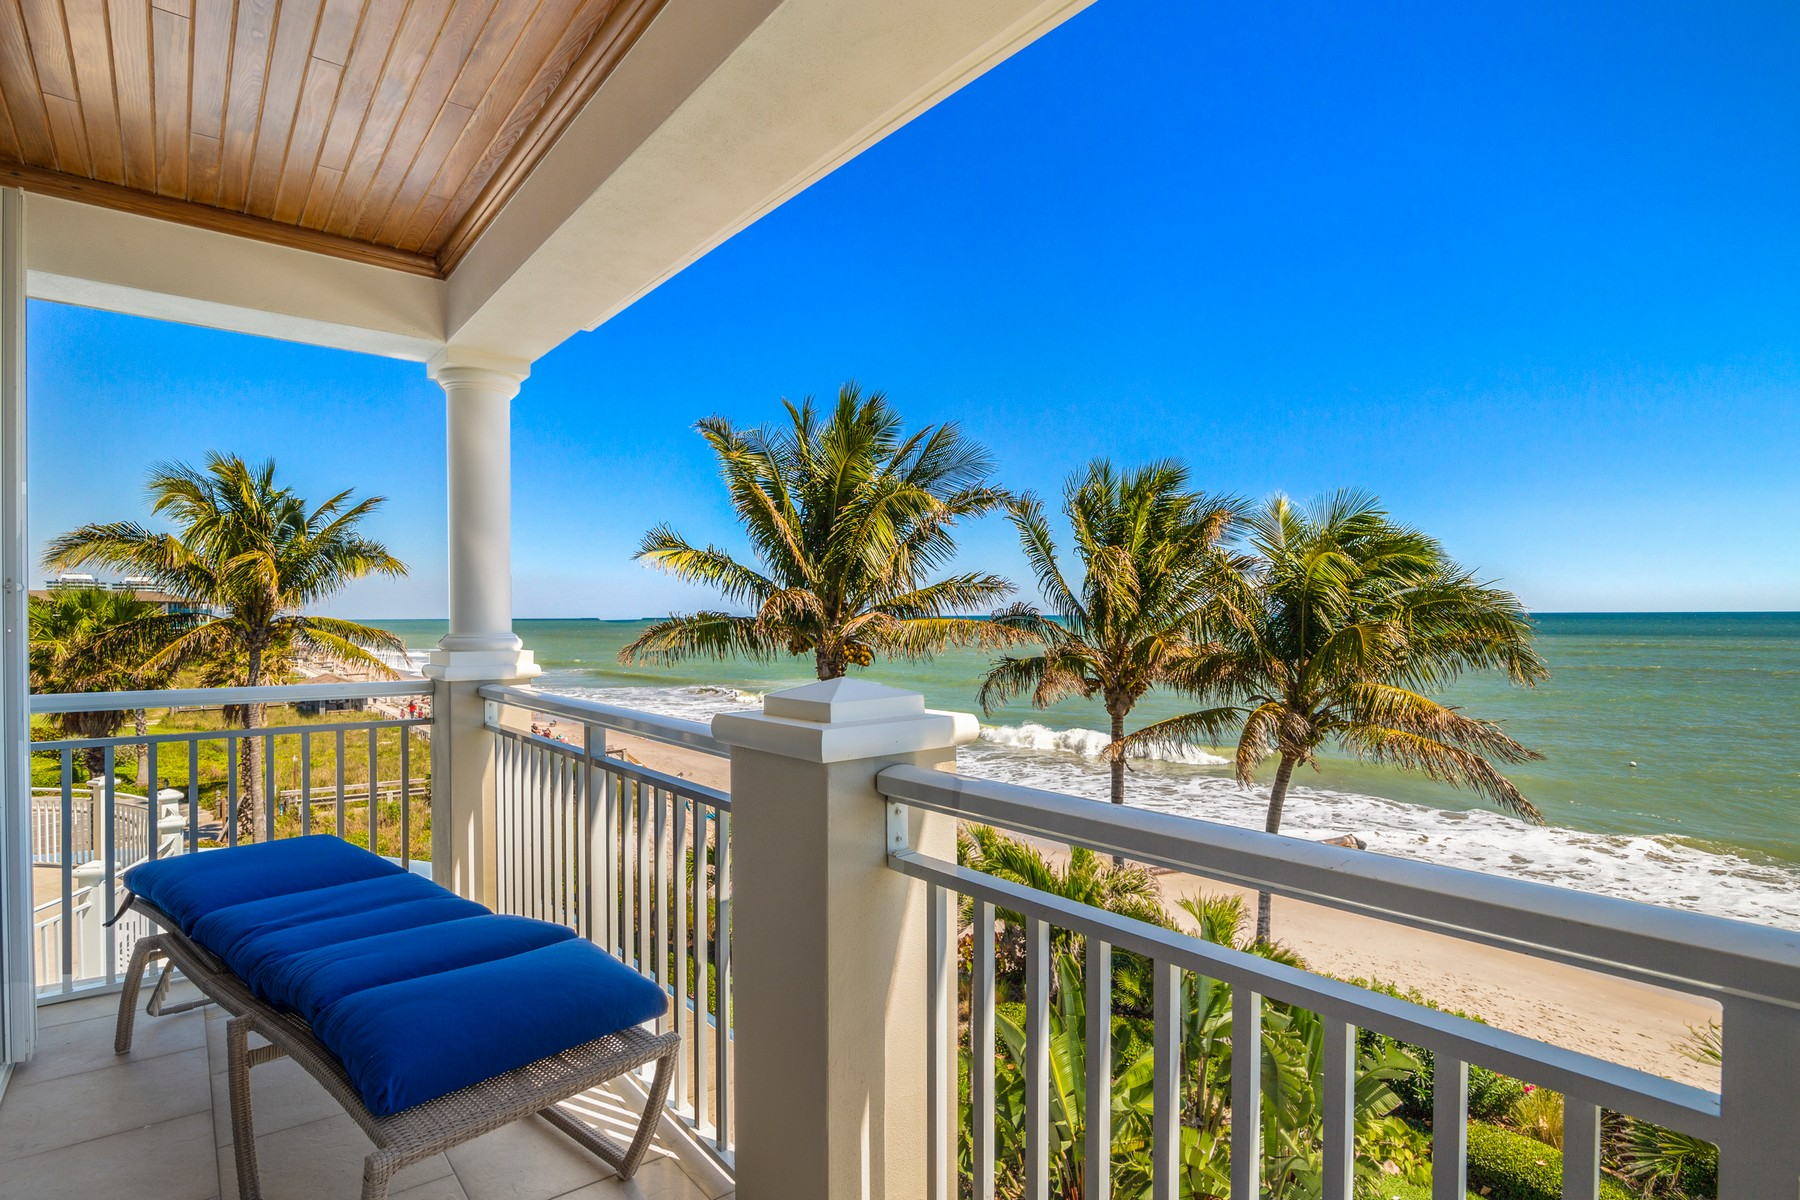 Condominium for Sale at Elegant Oceanfront Townhome Right in Town 1010 Easter Lily Ln #105 Vero Beach, Florida 32963 United States